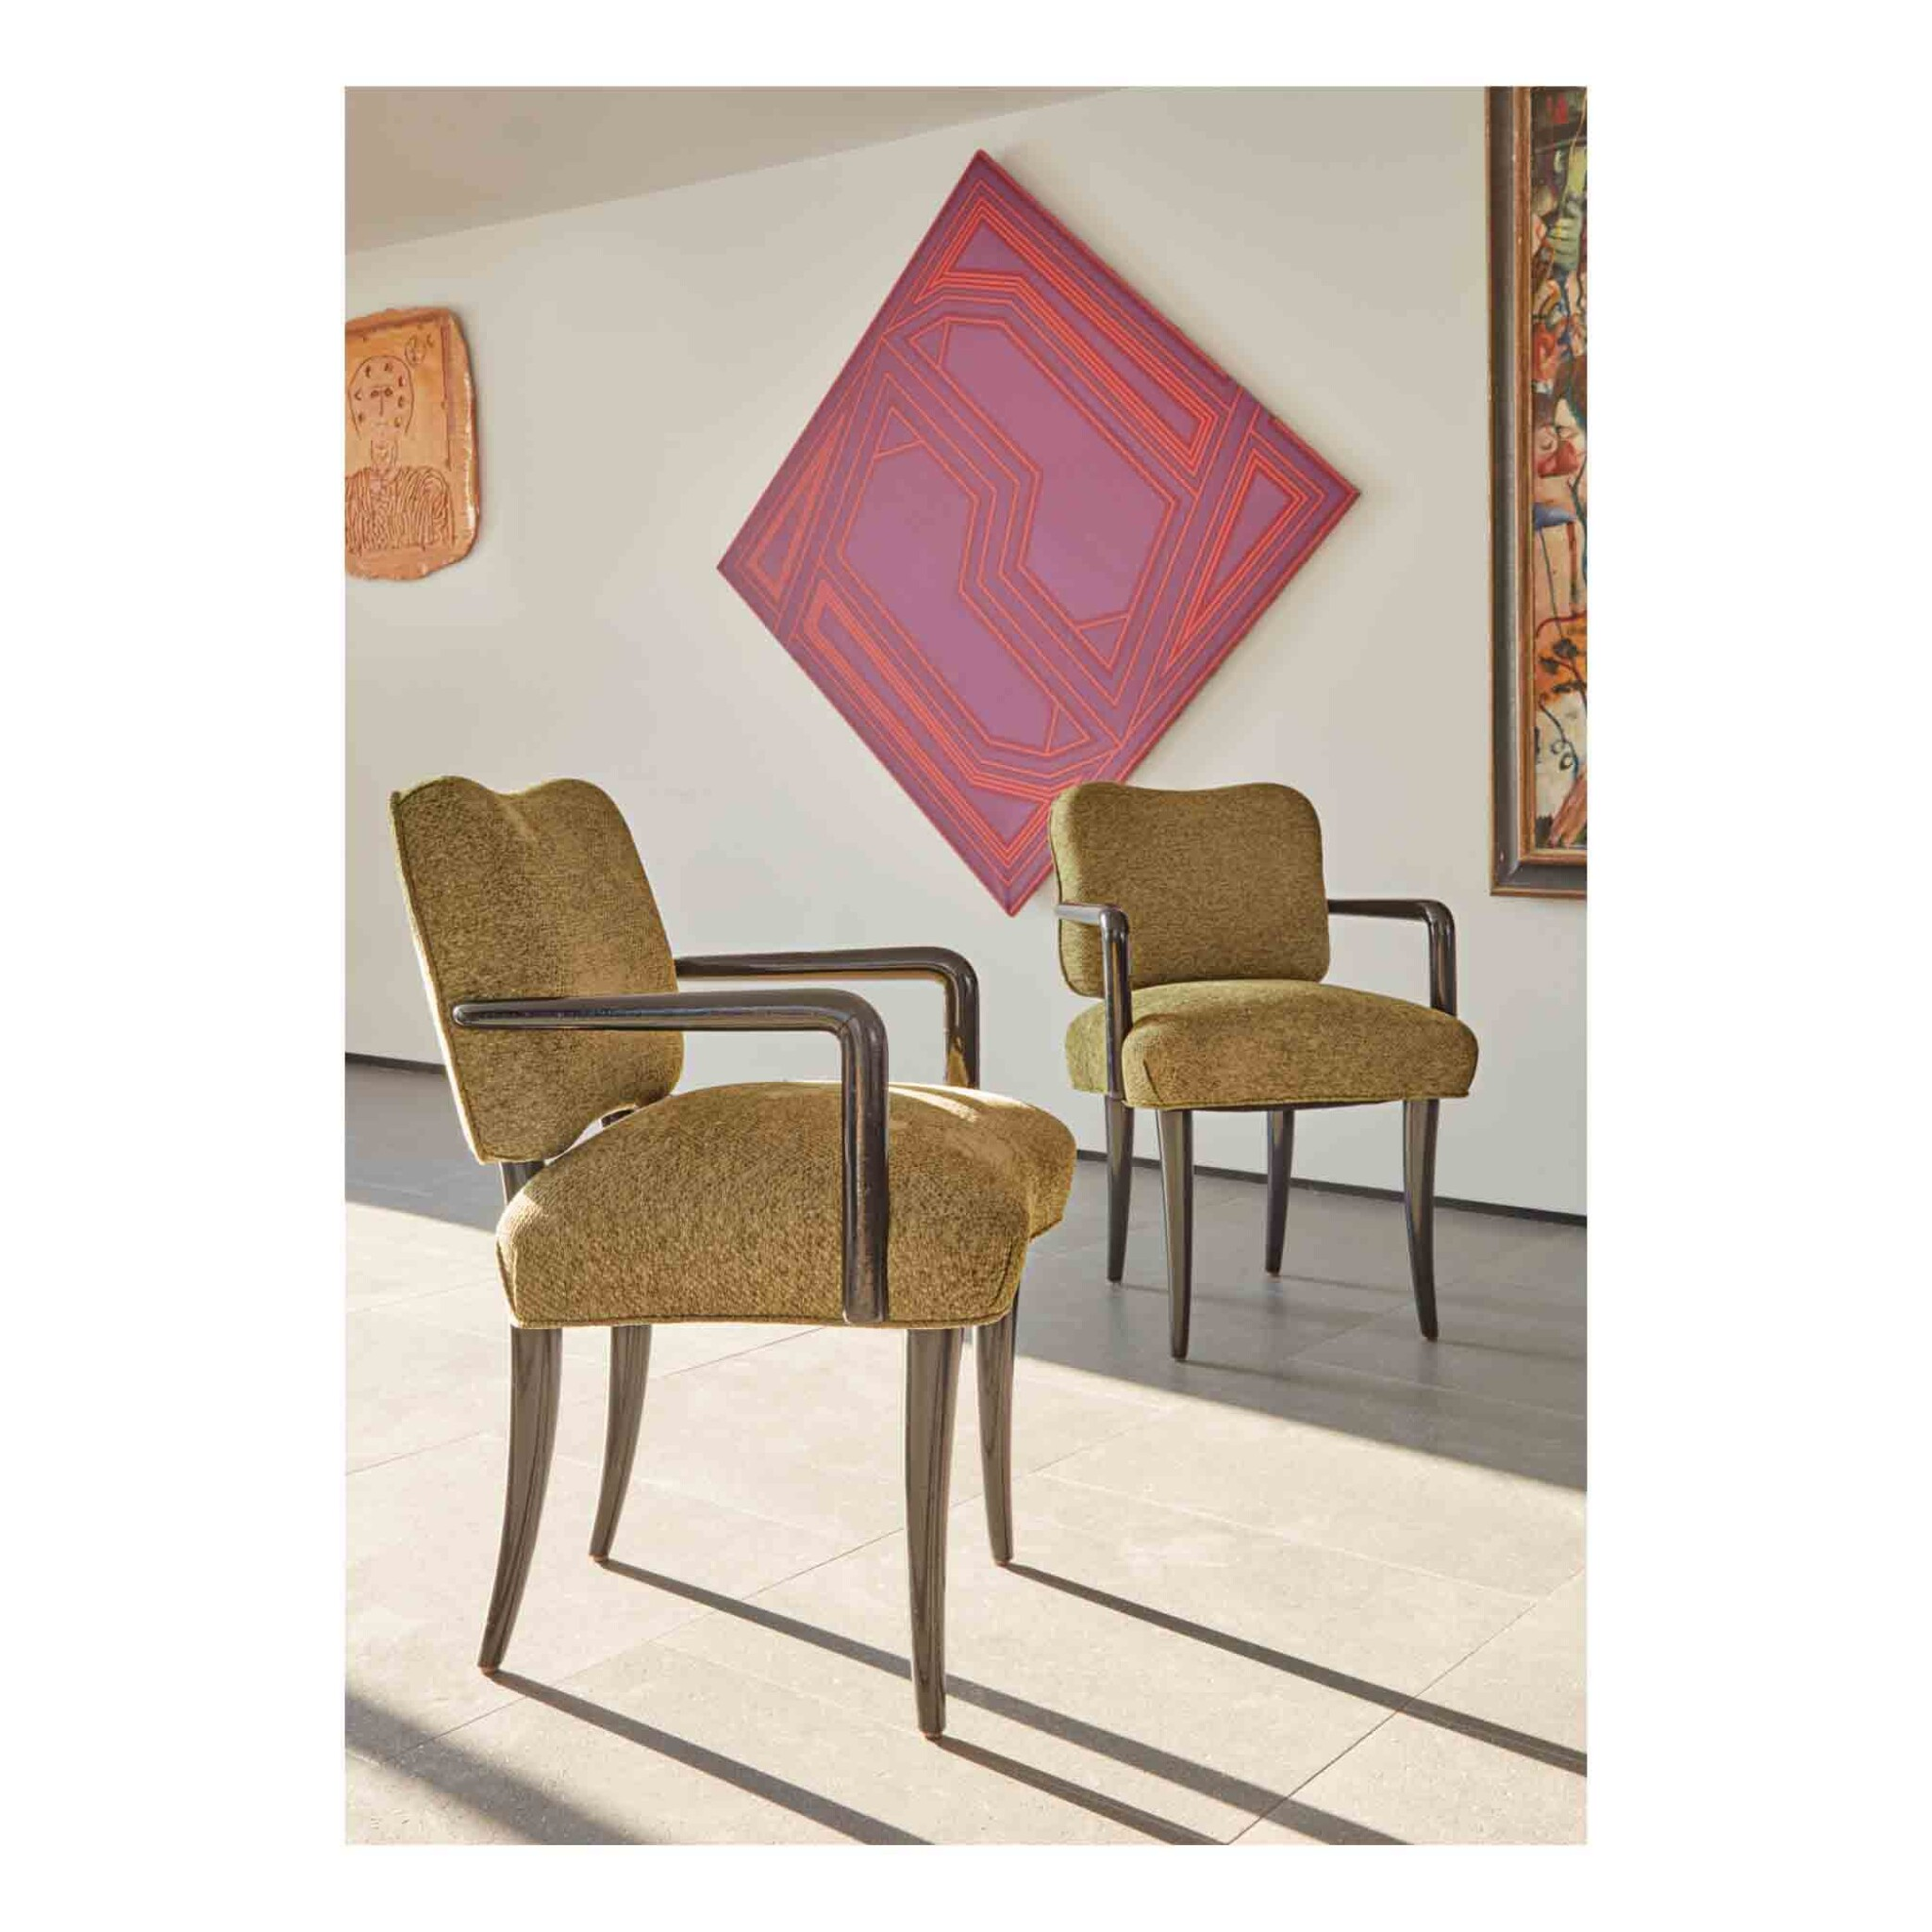 """View 1 of Lot 404. Pair of """"Trèfle"""" Armchairs."""